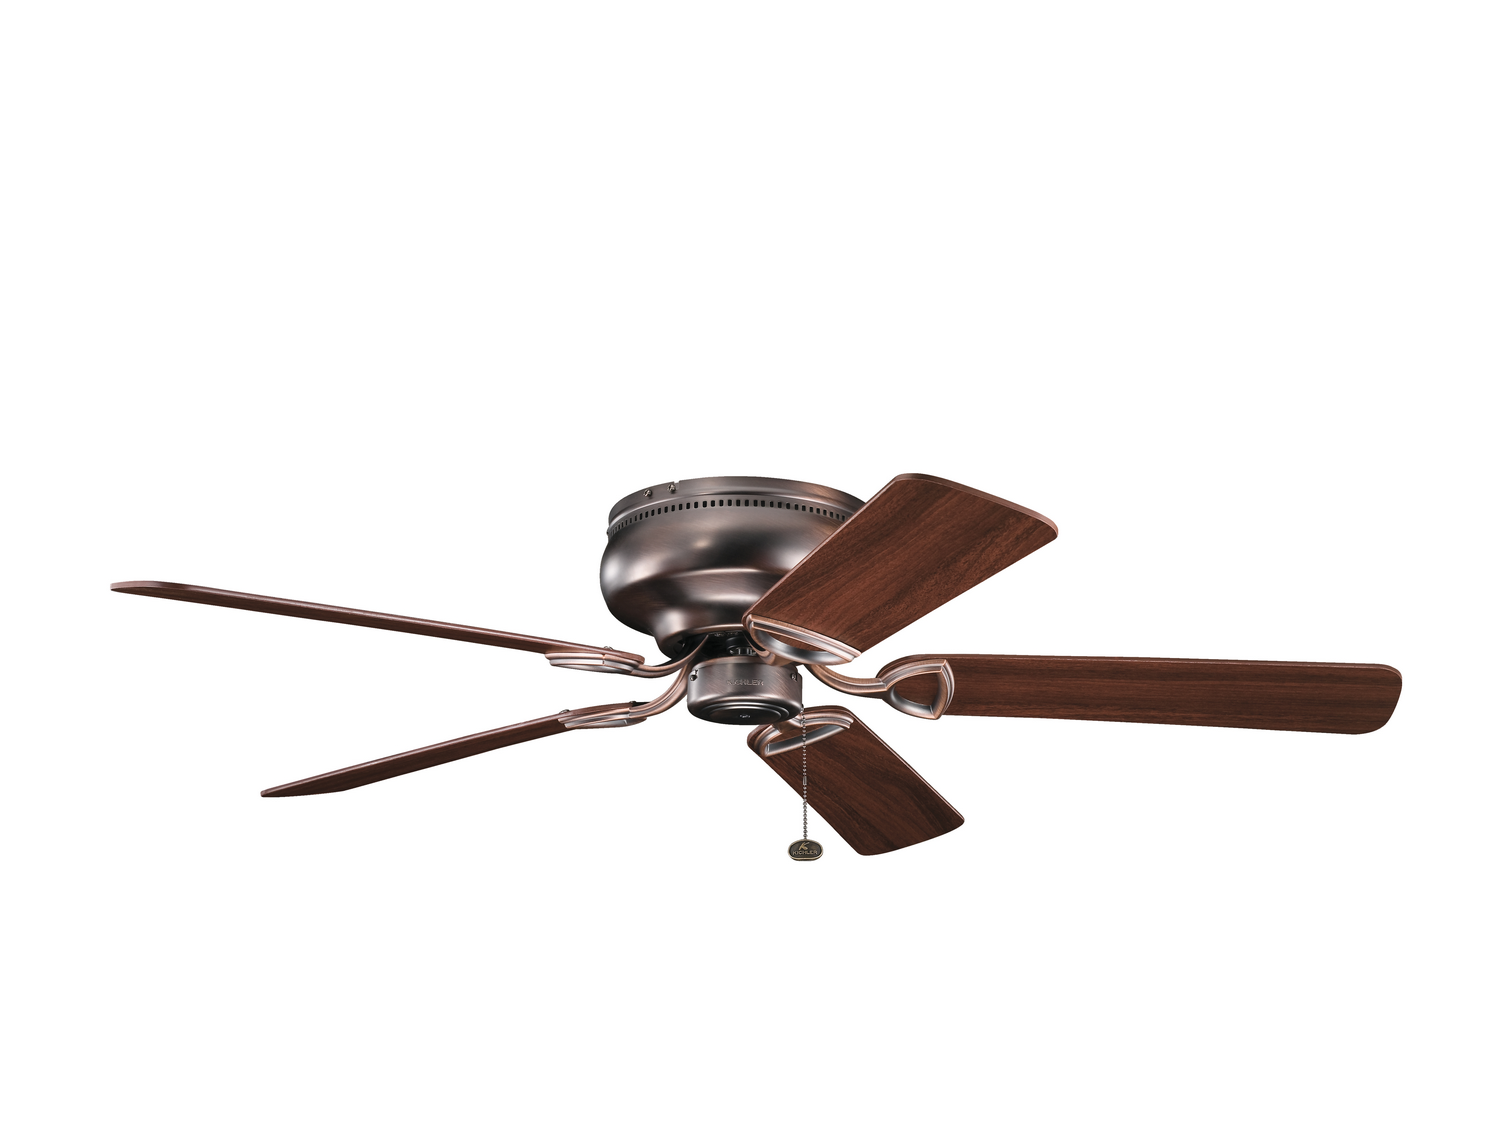 52 inchCeiling Fan from the Stratmoor collection by Kichler 339022OBB